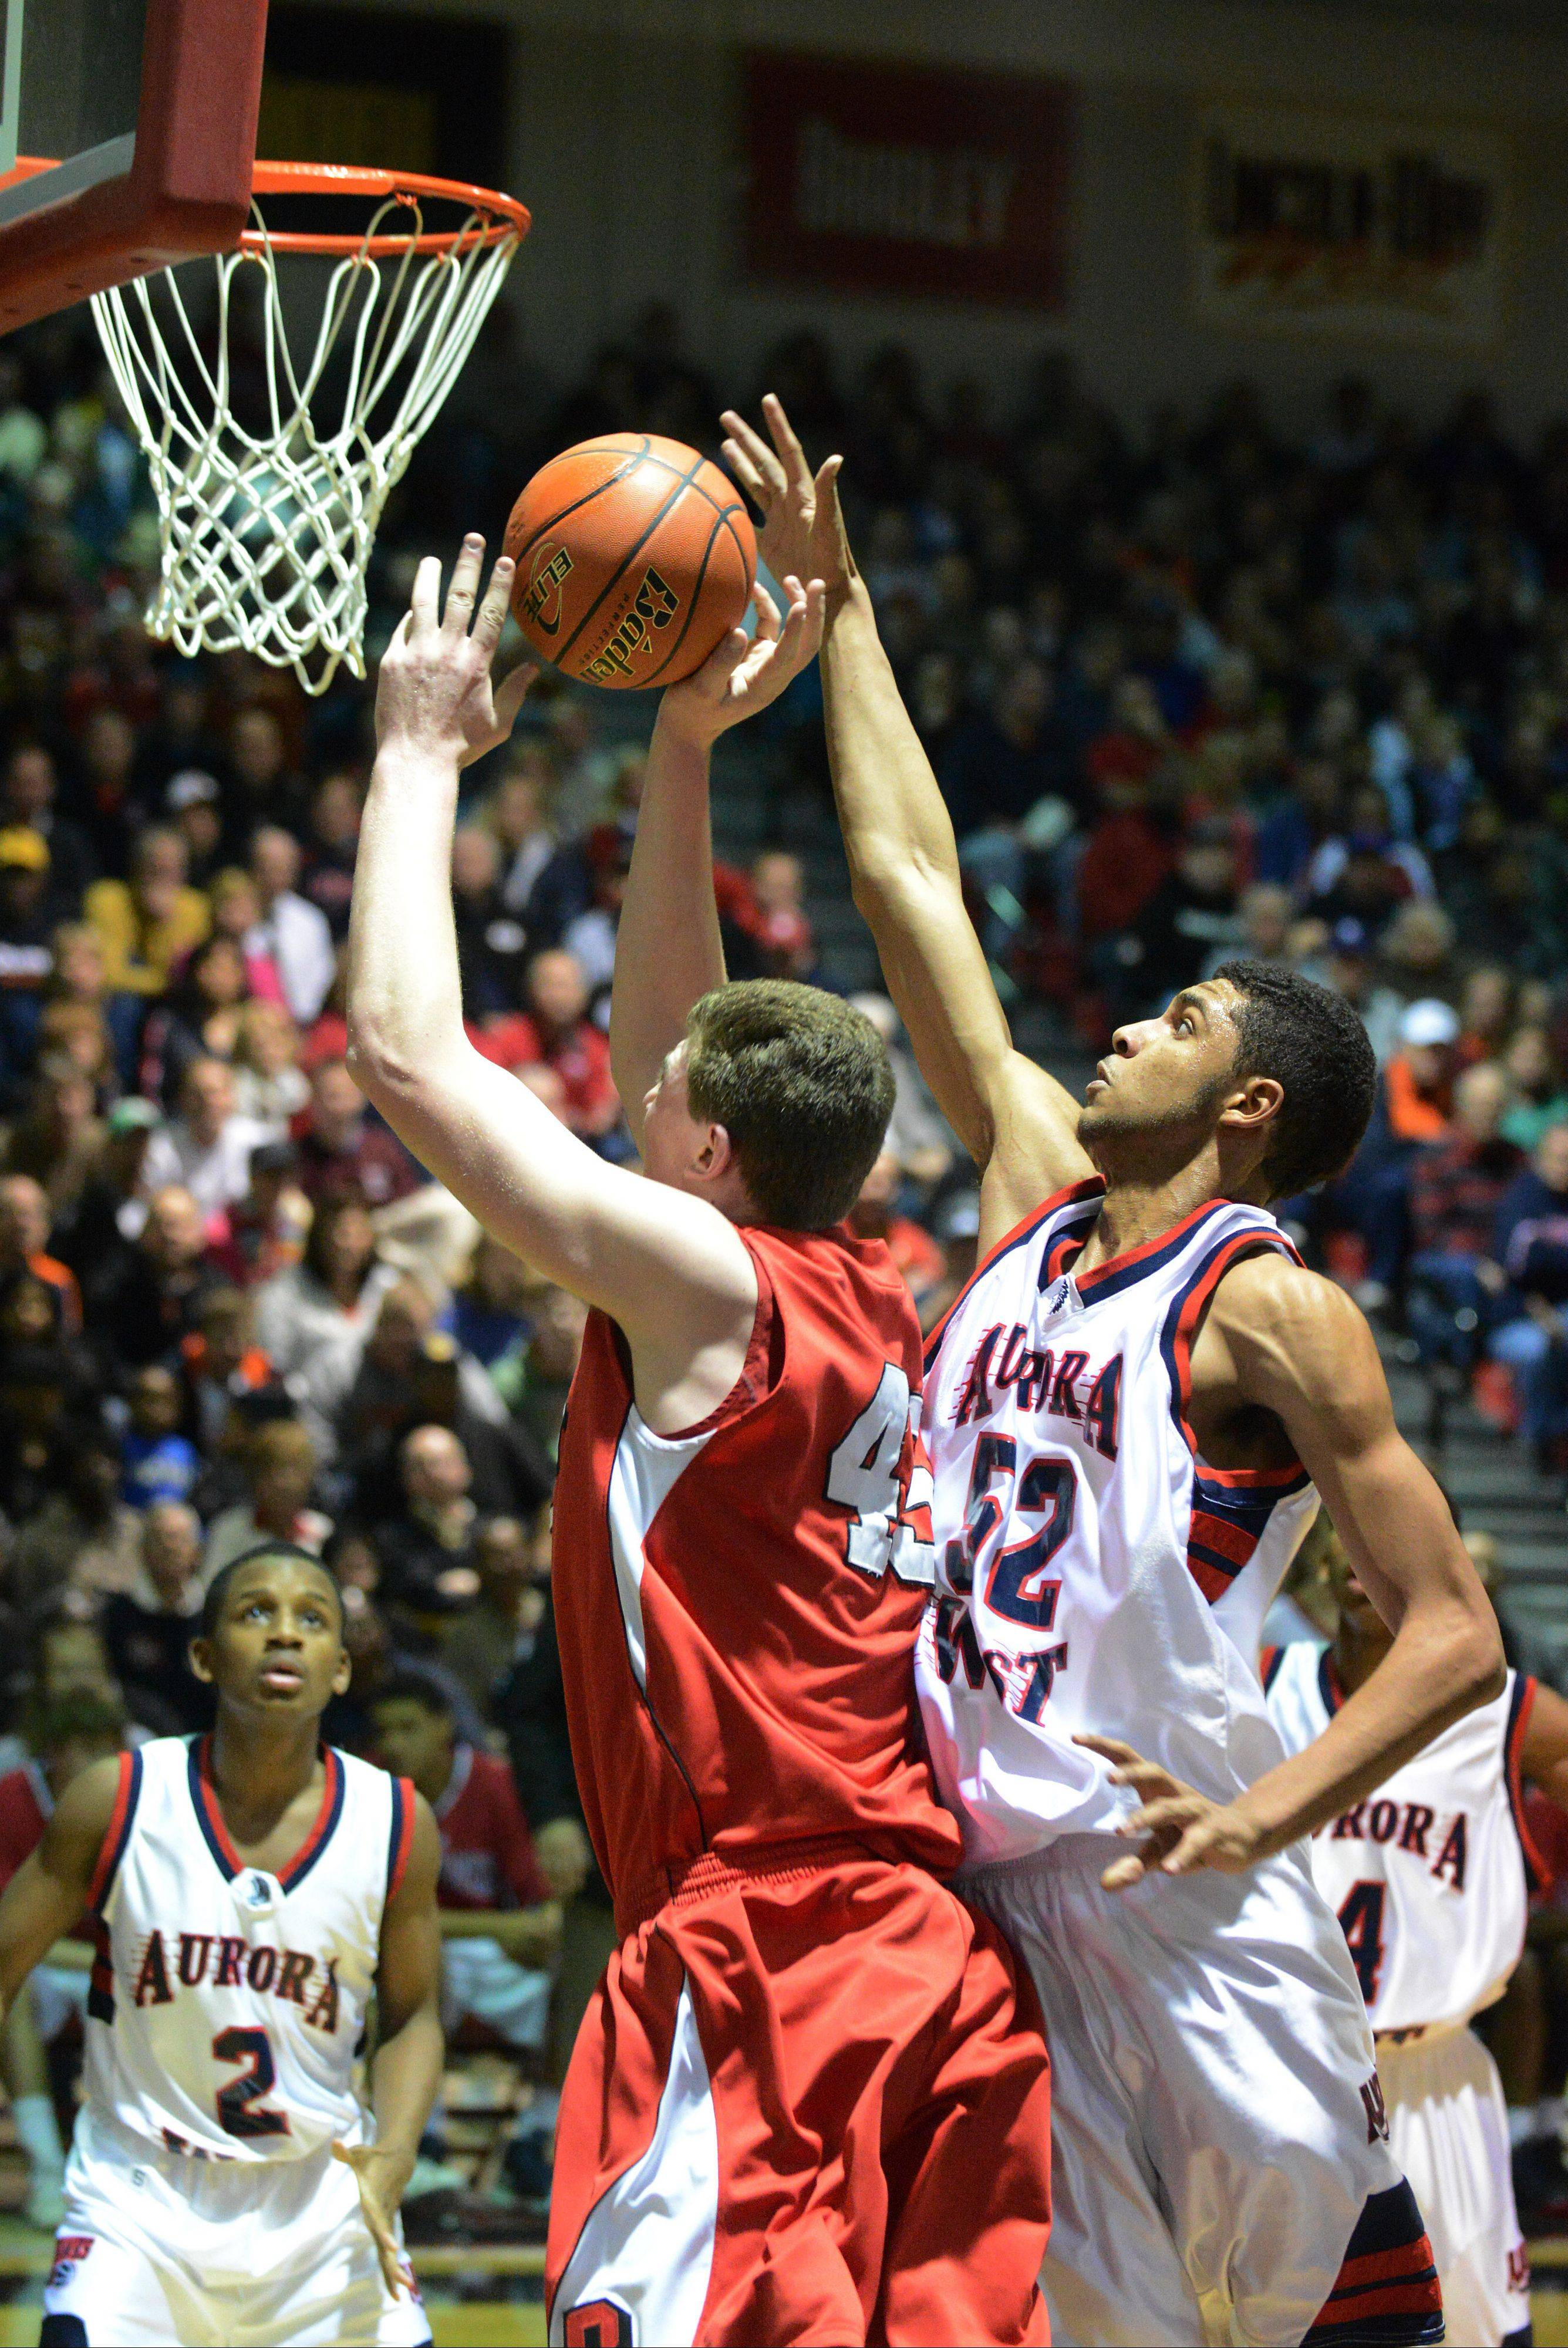 West Aurora's Josh McAuley and Benet's Sean O'Mara battled inside all night.